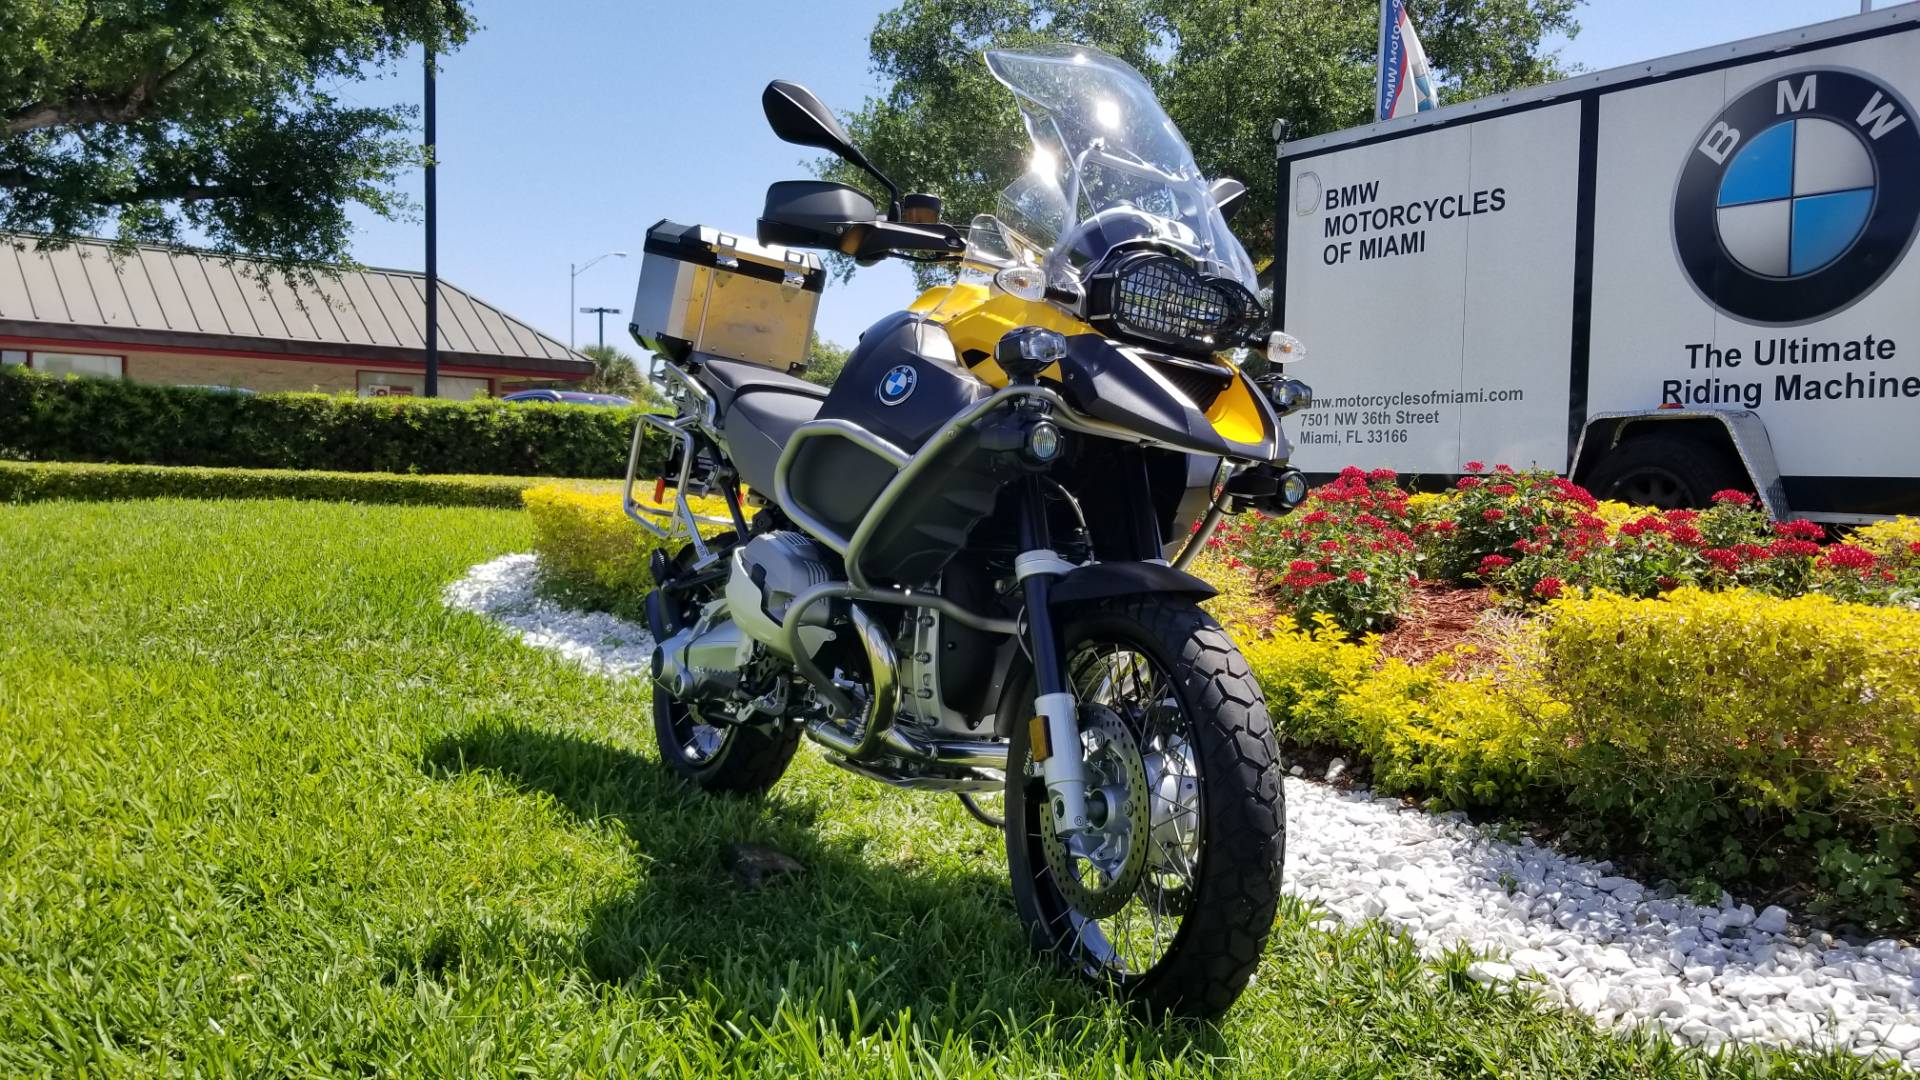 Used 2011 BMW R 1200 GSA For Sale, Pre owned BMW R 1200GSA For Sale, BMW Motorcycle R1200GSA, BMW Motorcycles of Miami, Motorcycles of Miami, Motorcycles Miami - Photo 12